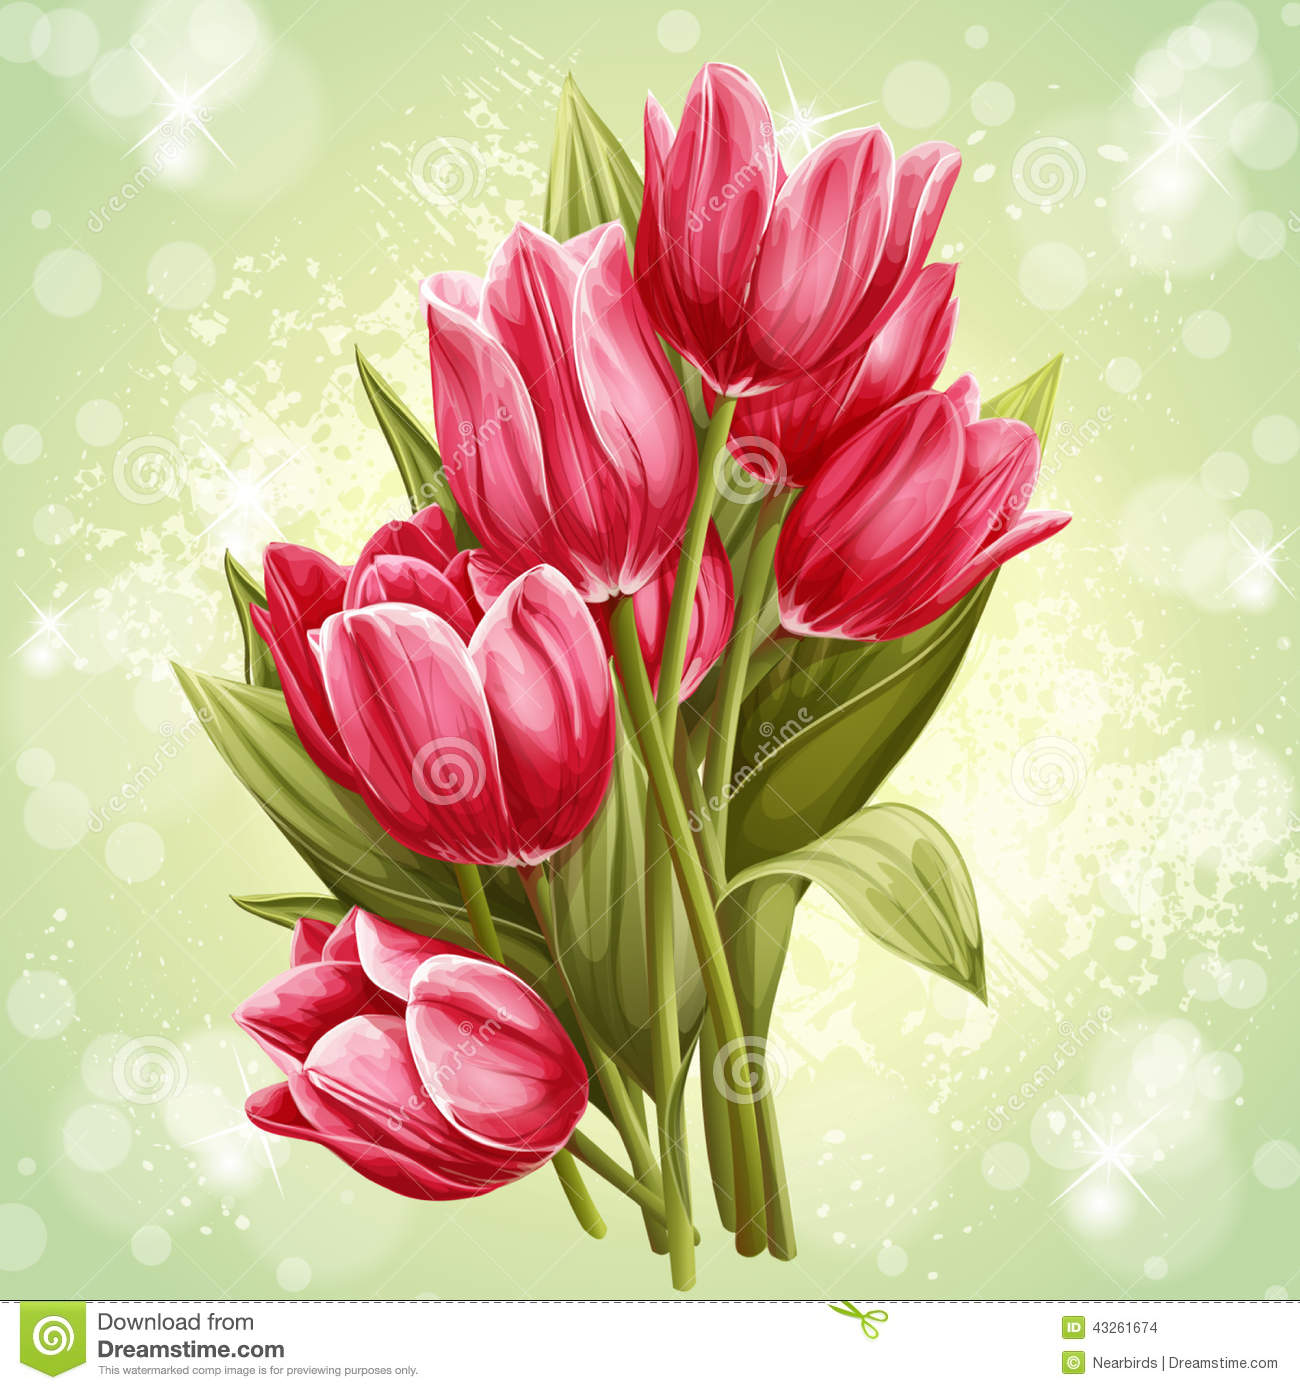 Image d 39 un bouquet des fleurs des tulipes roses for Bouquet de tulipes